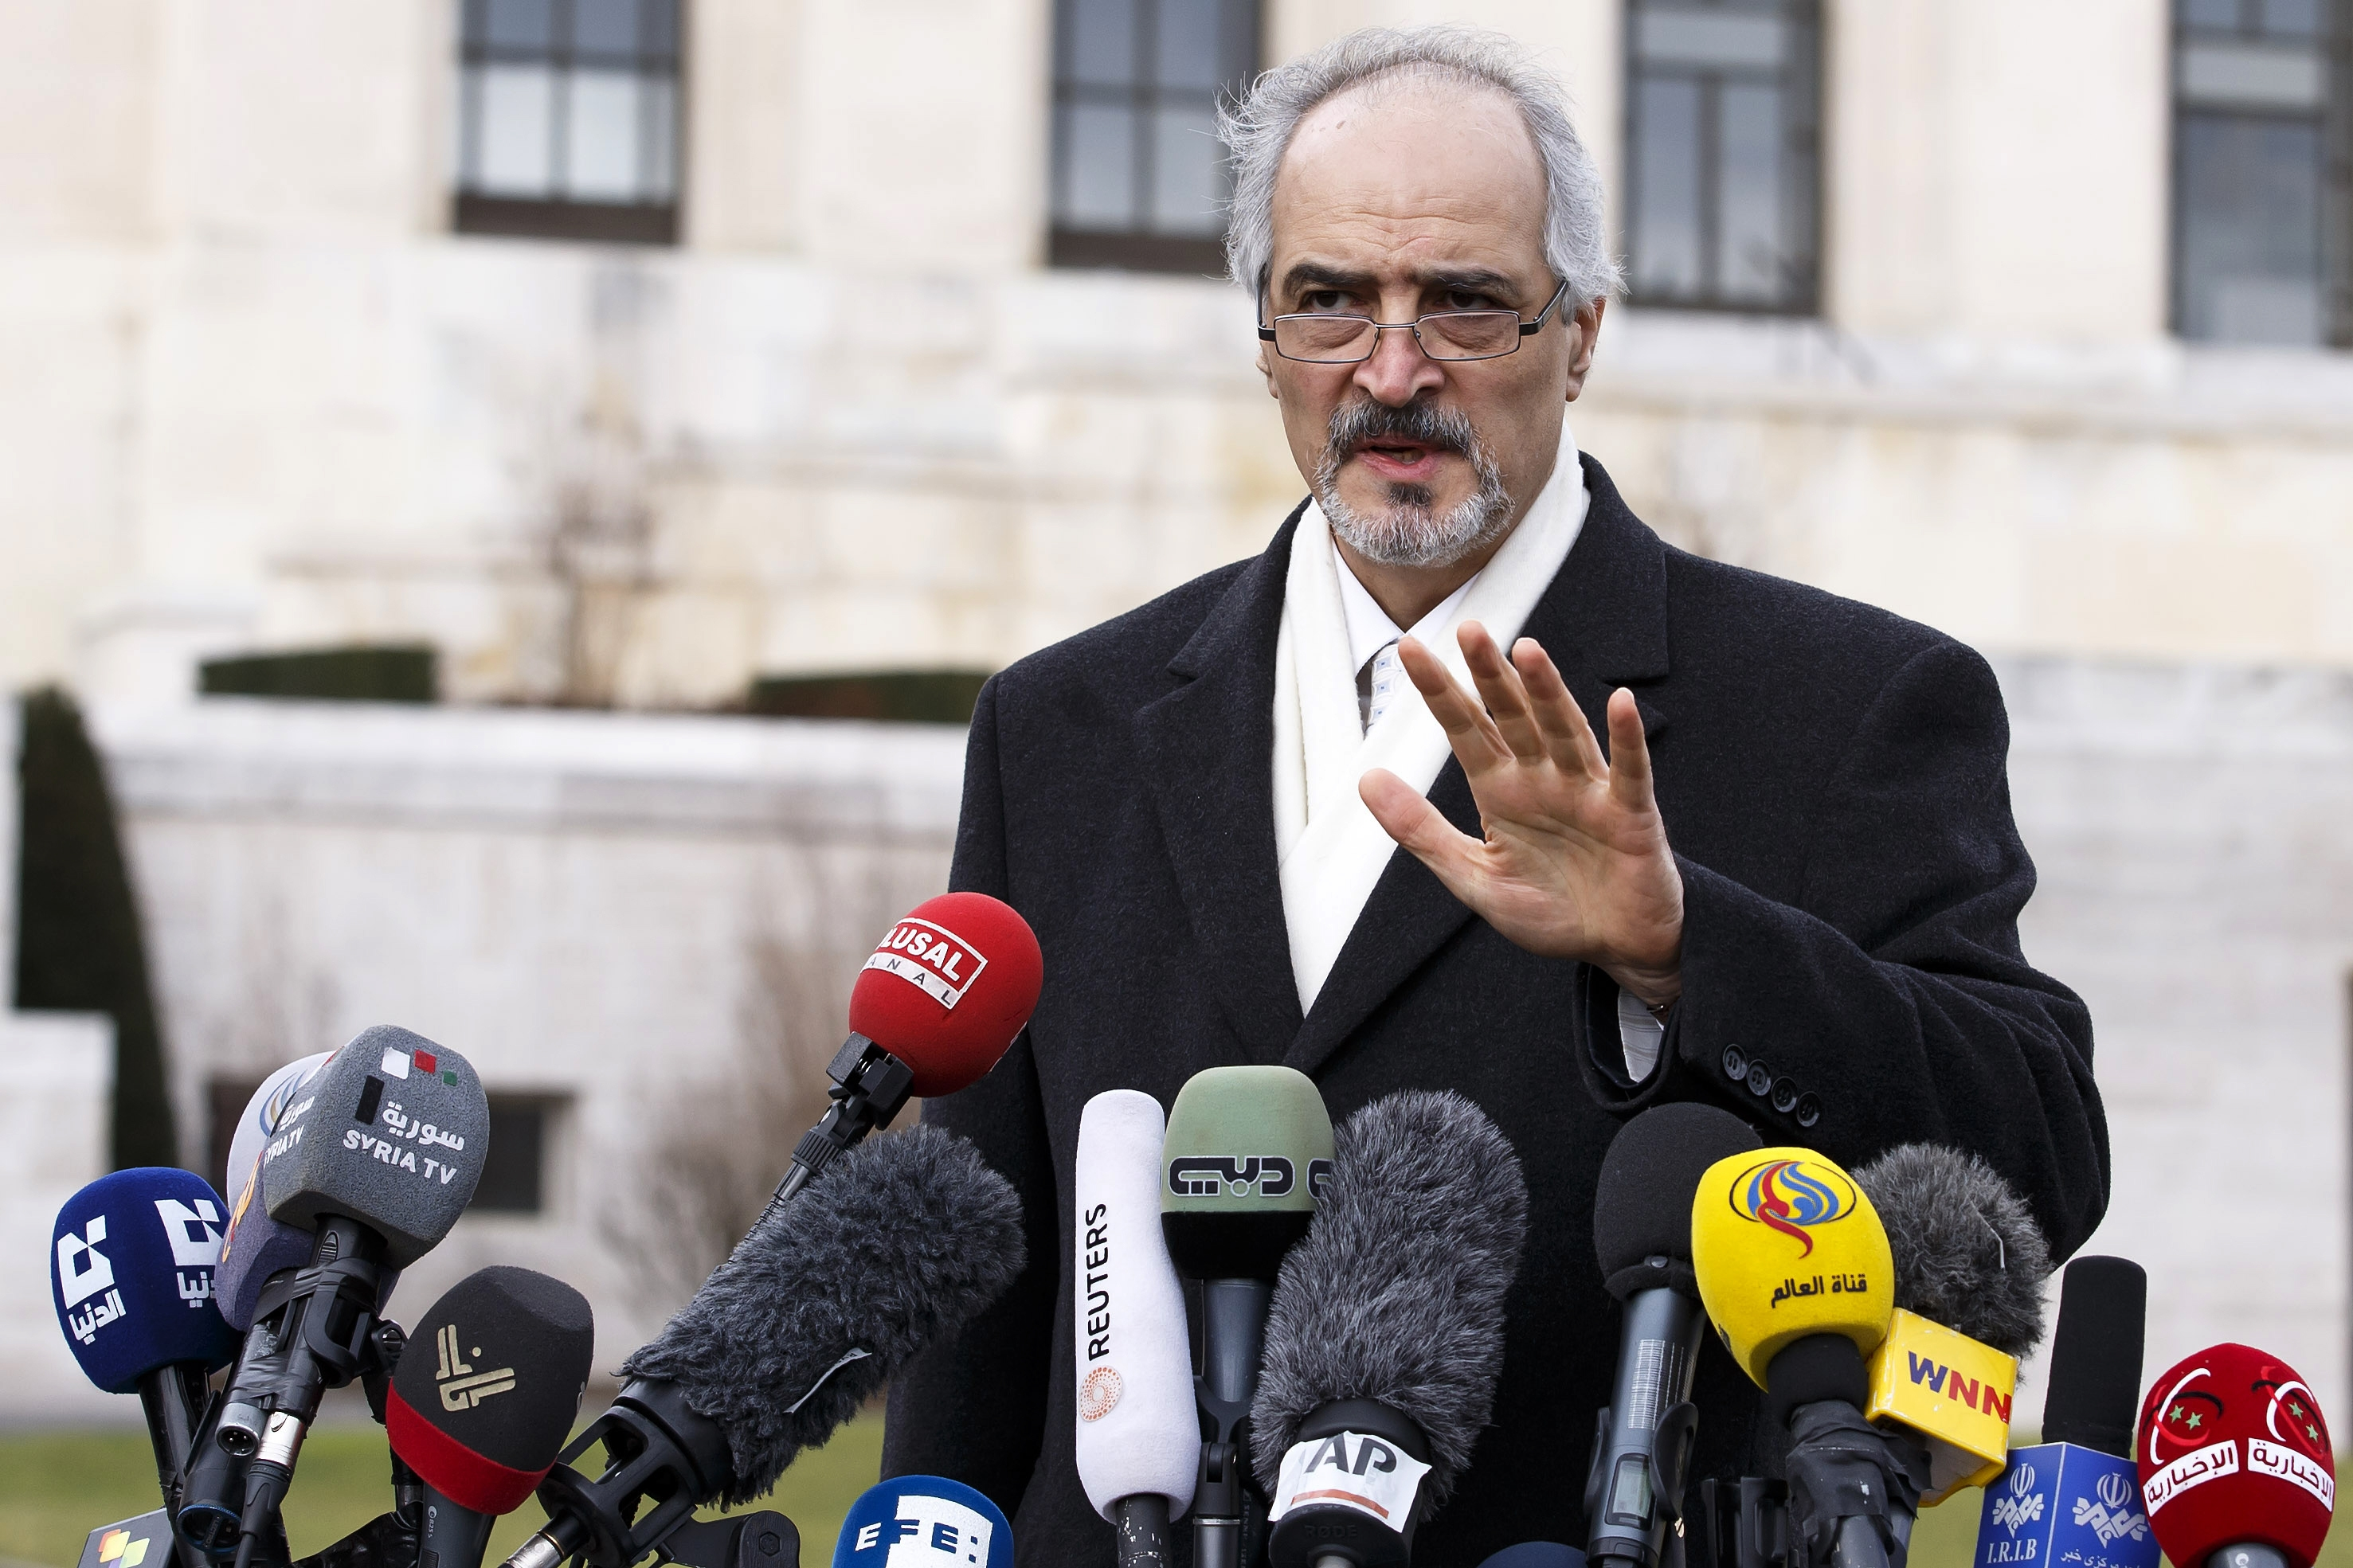 Syrian chief negotiator Bashar Jaafari on Saturday lashed out at the United States and its allies for stepping up military aid to the rebels.